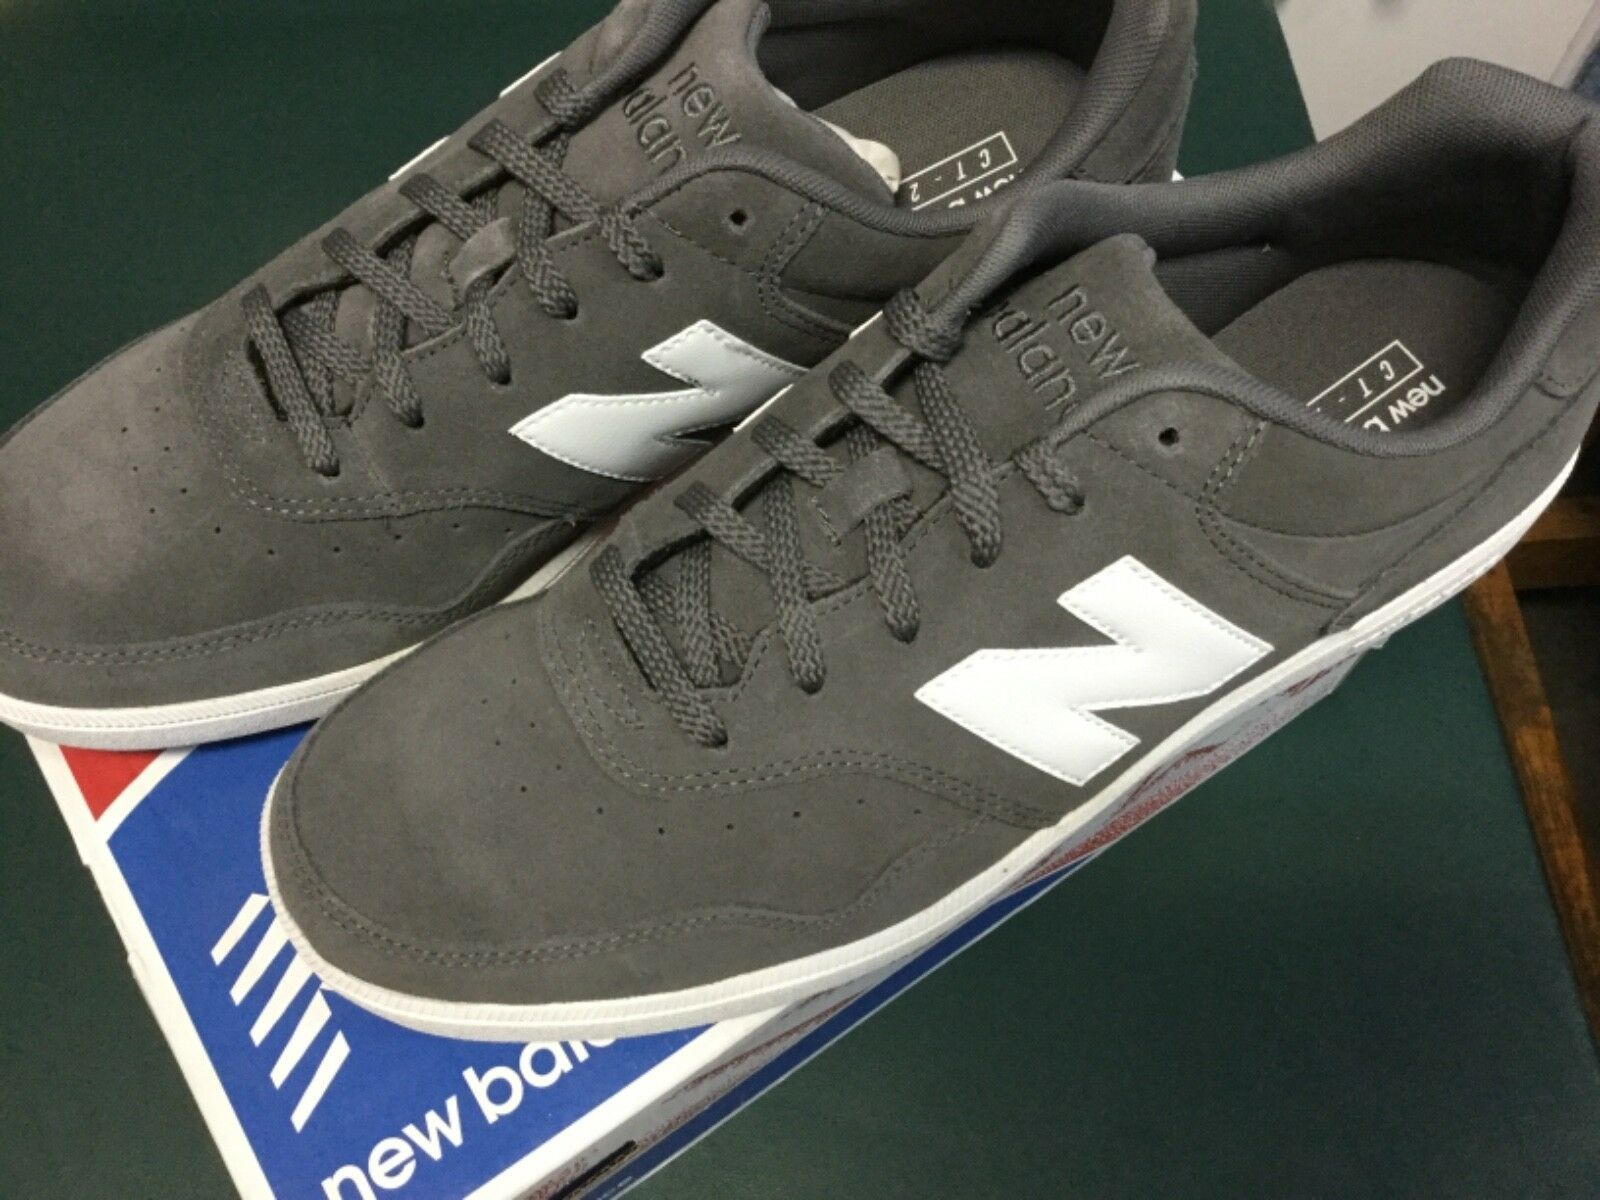 Genuine New balance lifestyle CT288GW new in box Grey Size 13 running shoes